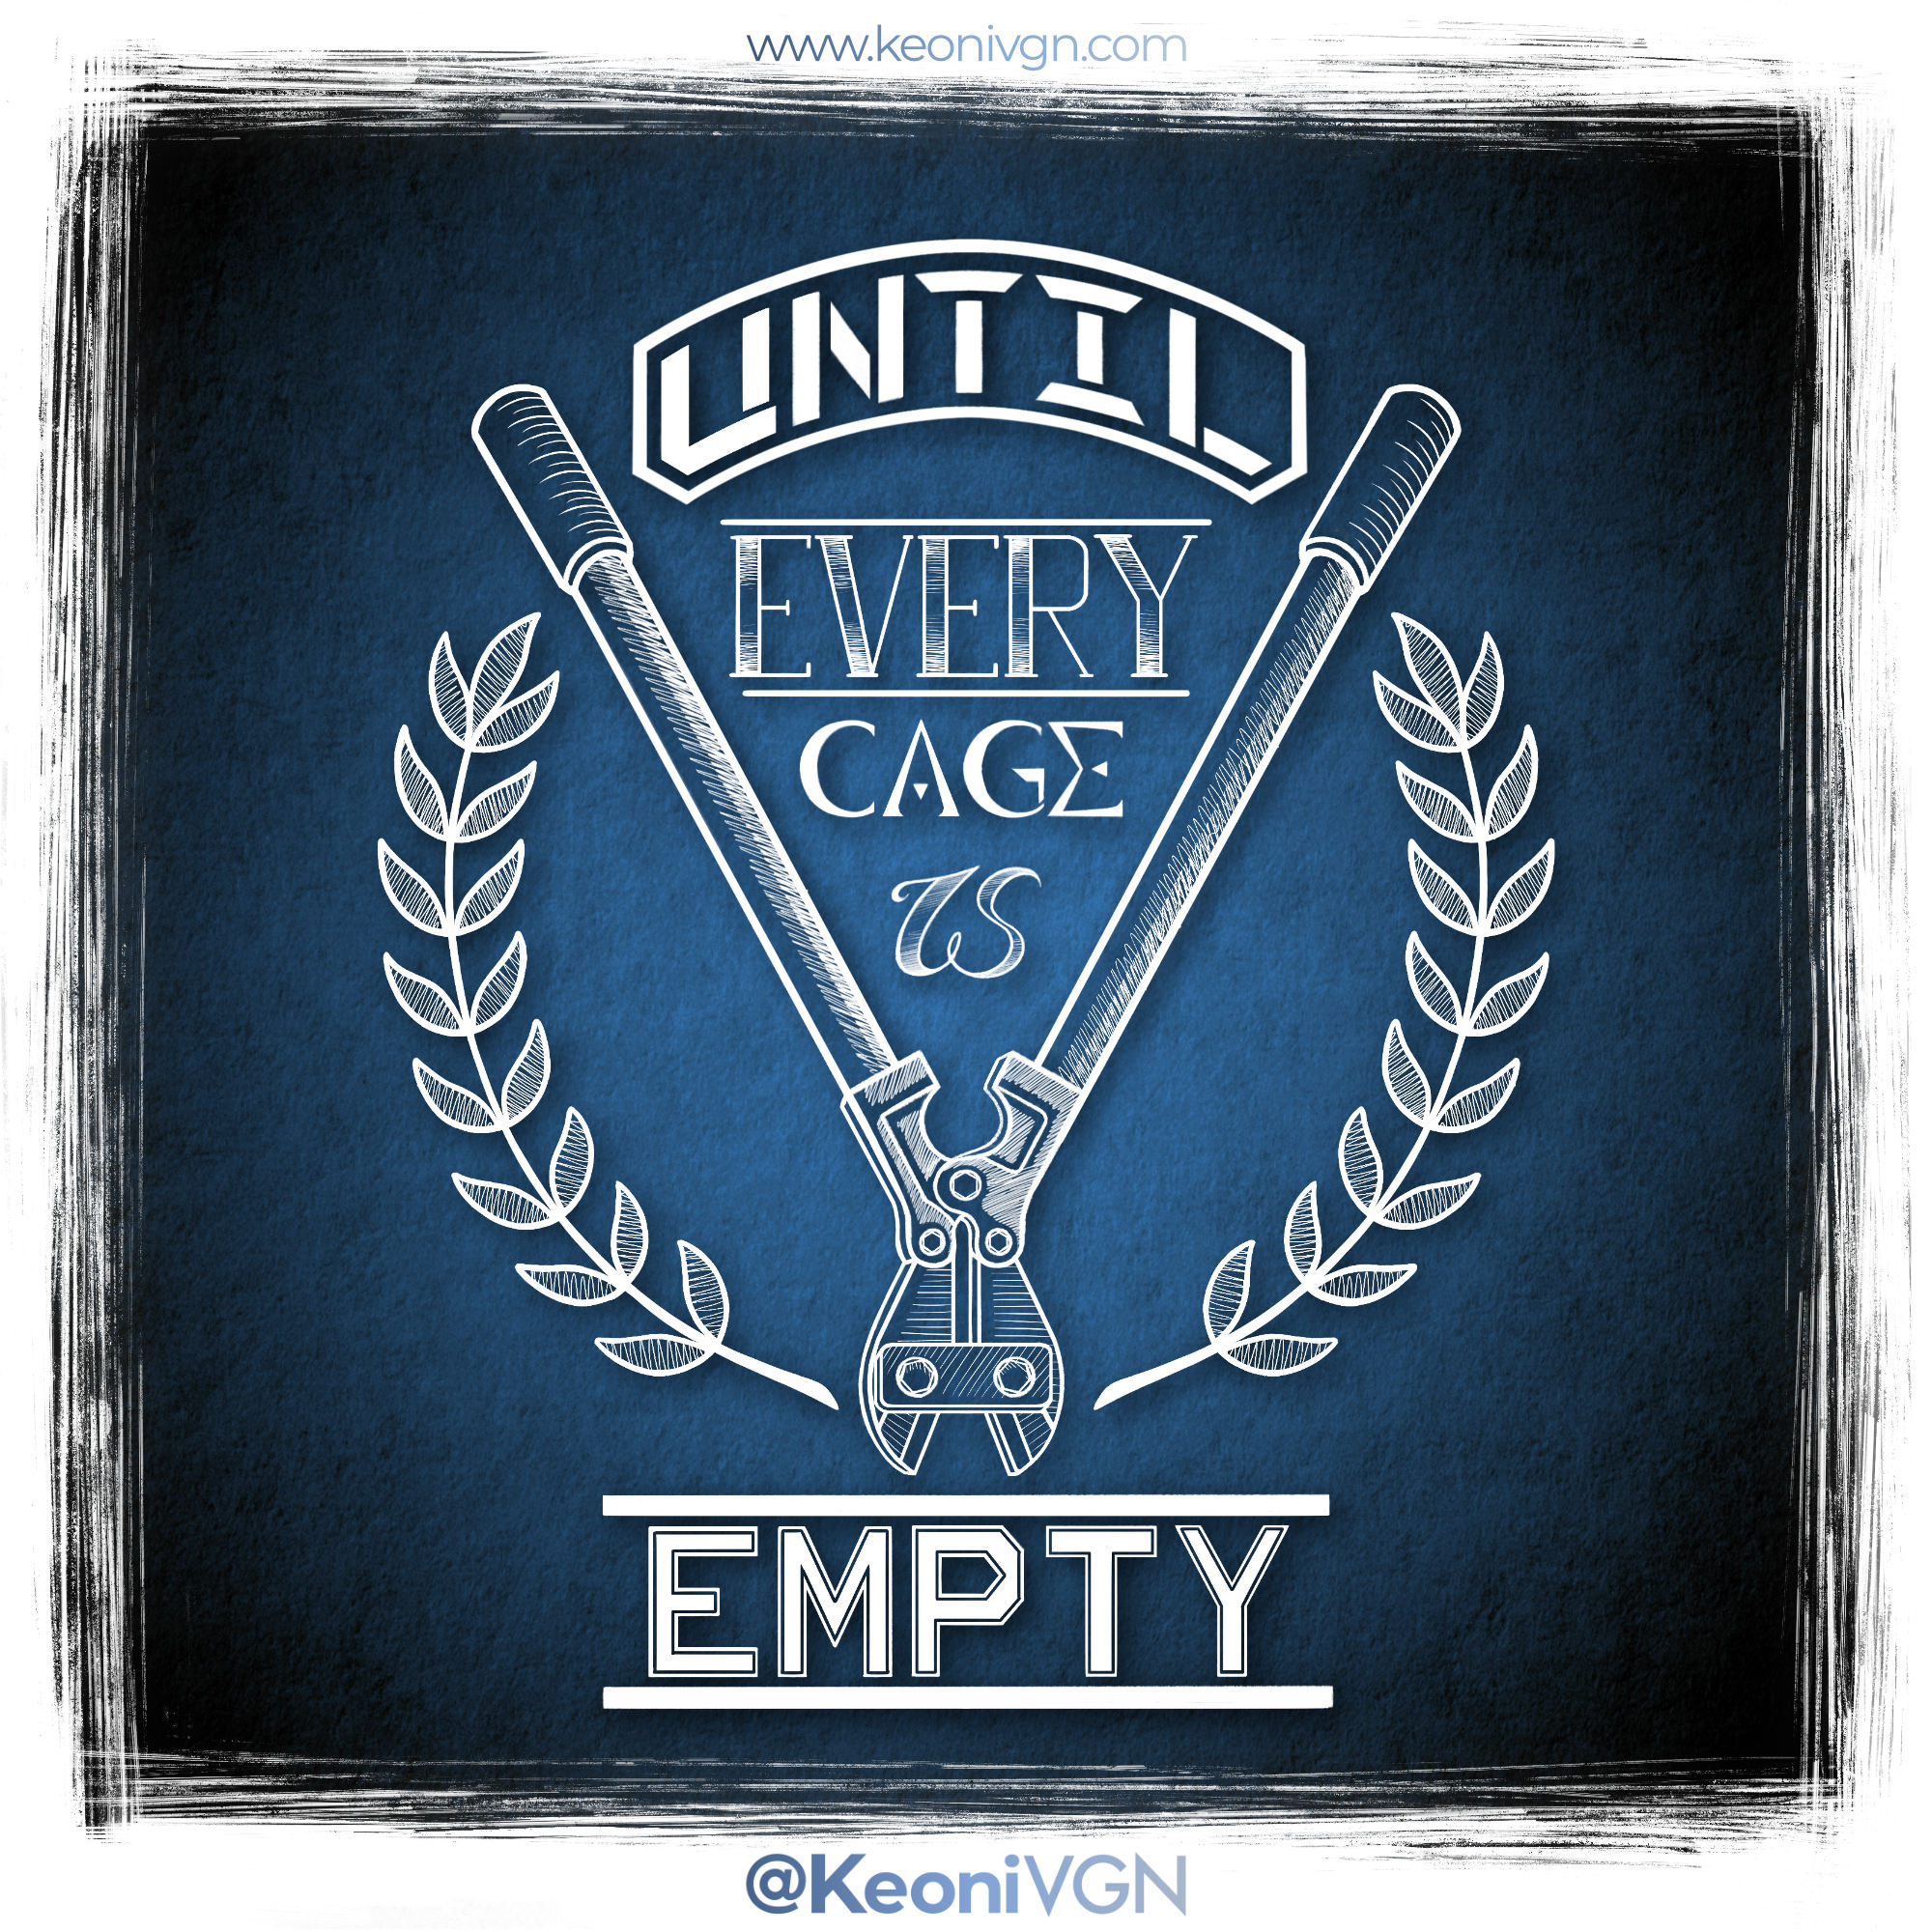 proyecto UNTIL EVERY CAGE IS EMPTY